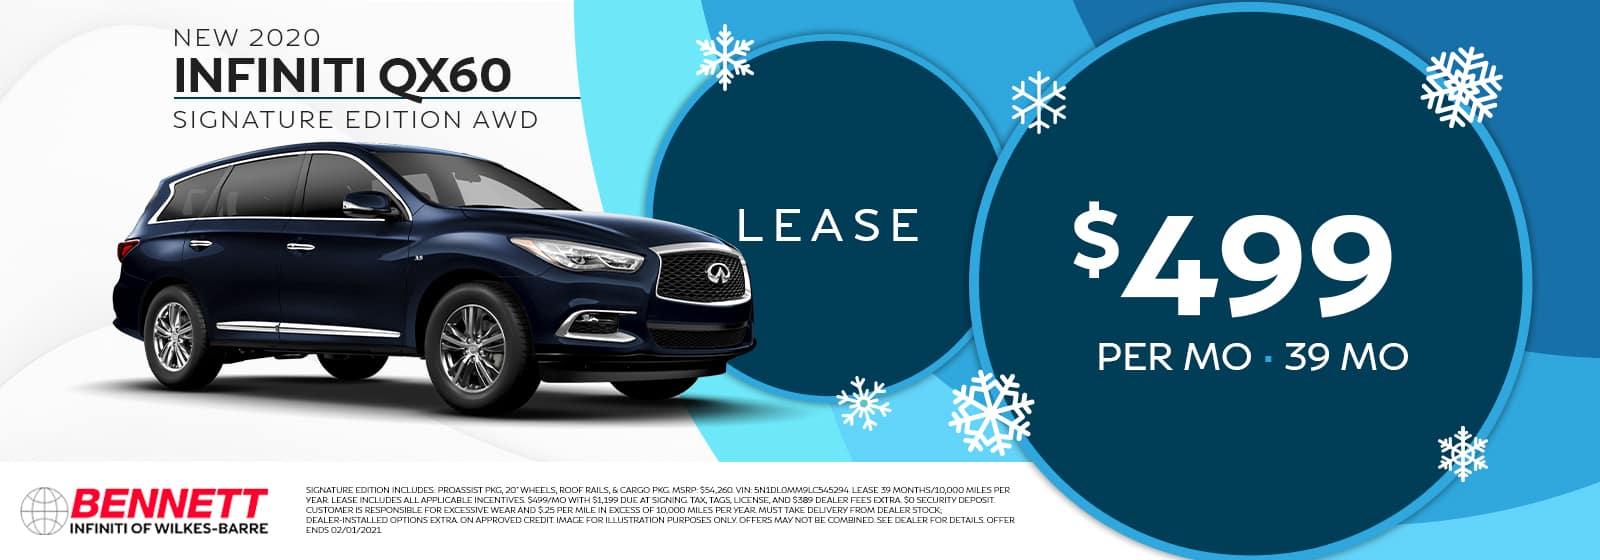 New 2020 INFINITI QX60 Signature Edition AWD - Lease for $499 per month for 39 months.